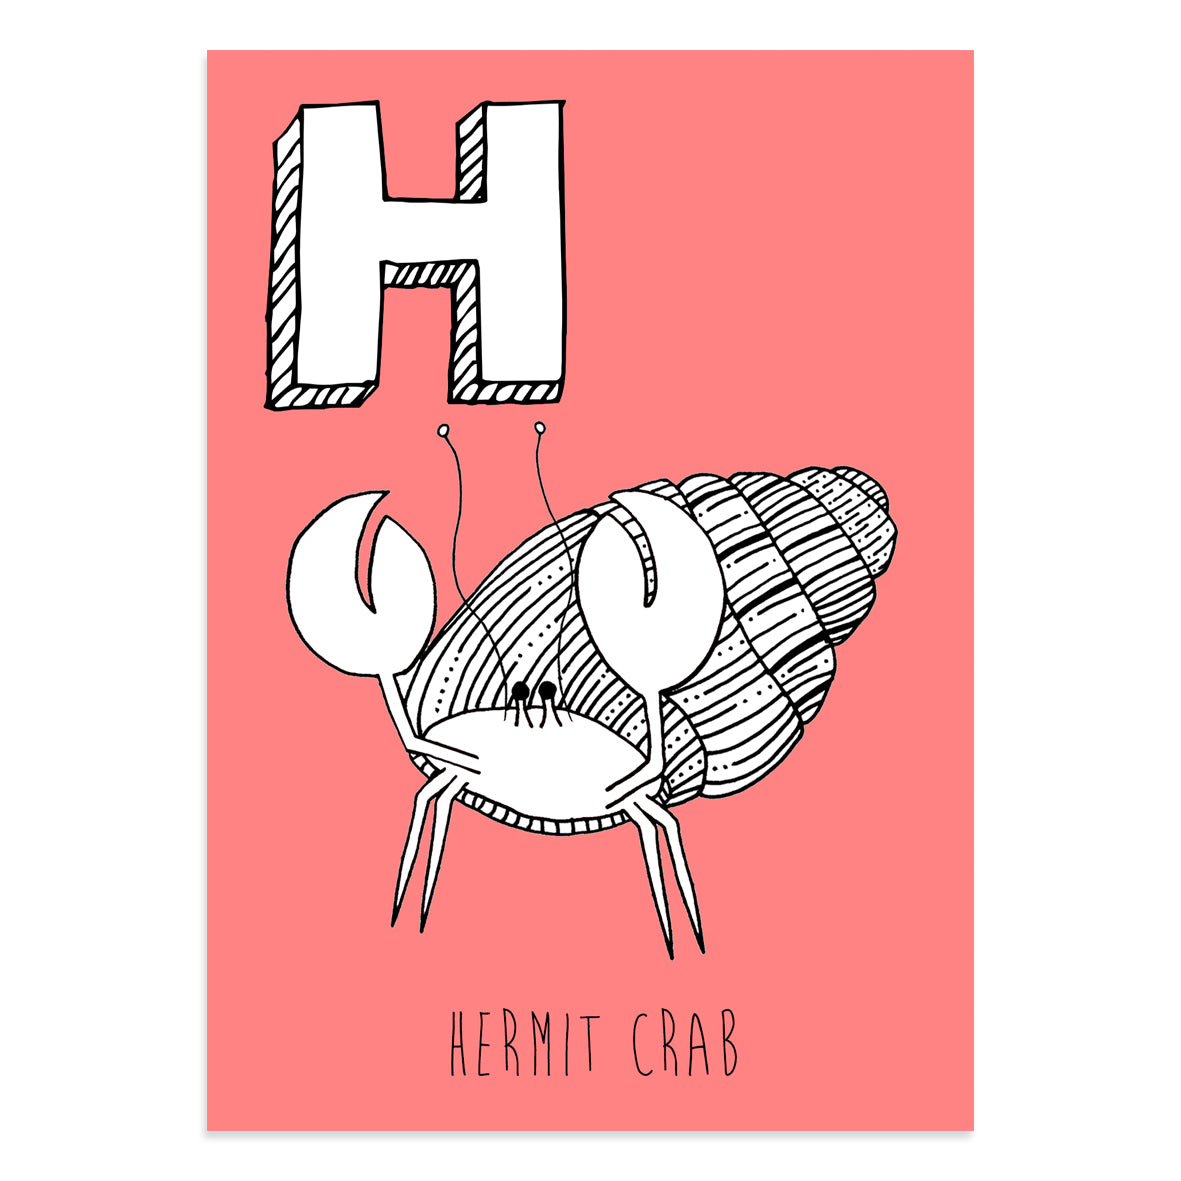 Red postcard featuring a hermit crab